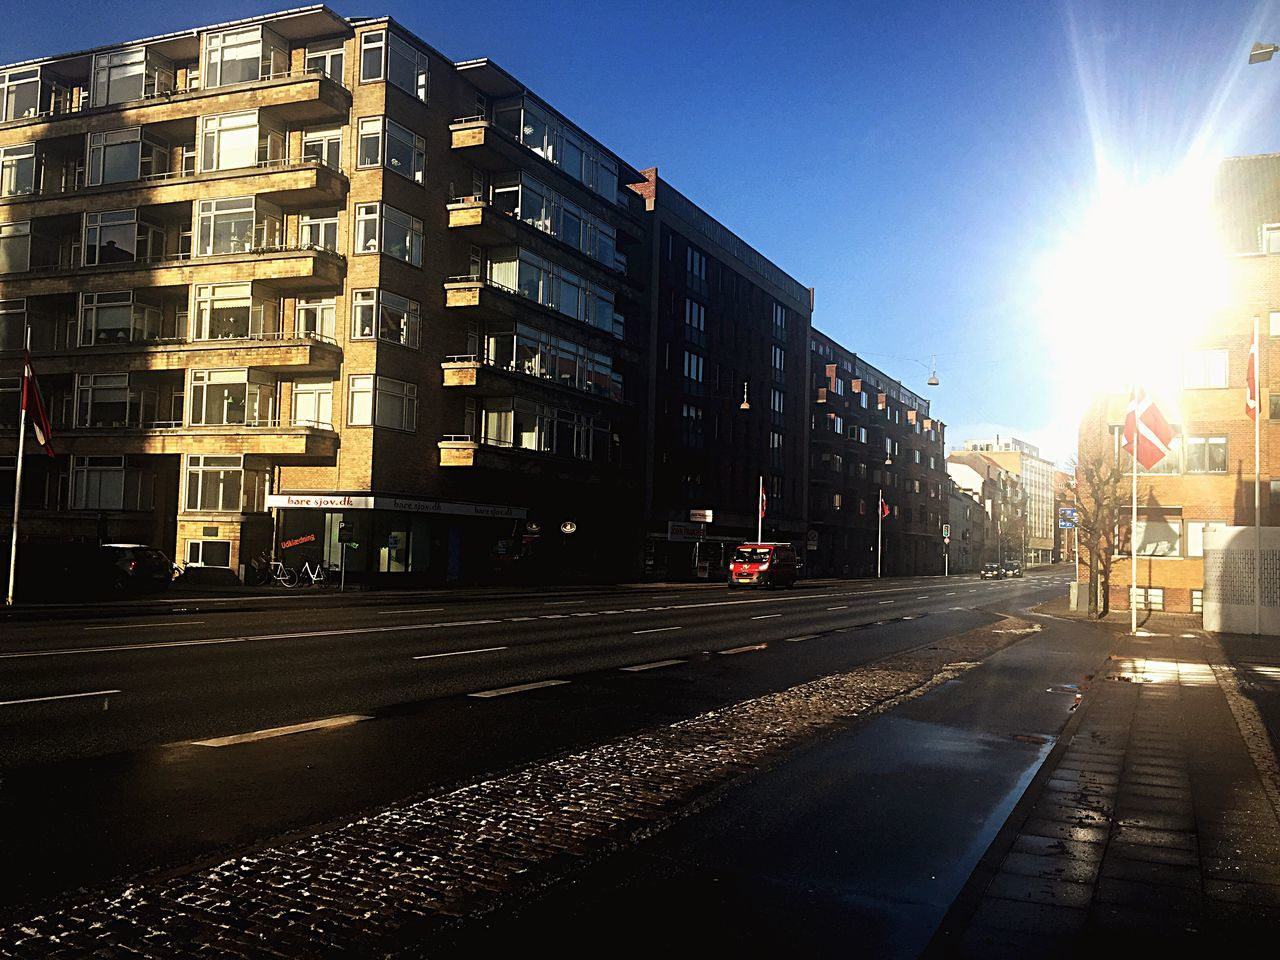 building exterior, architecture, sunlight, built structure, lens flare, city, street, outdoors, sun, road, day, sky, clear sky, no people, cityscape